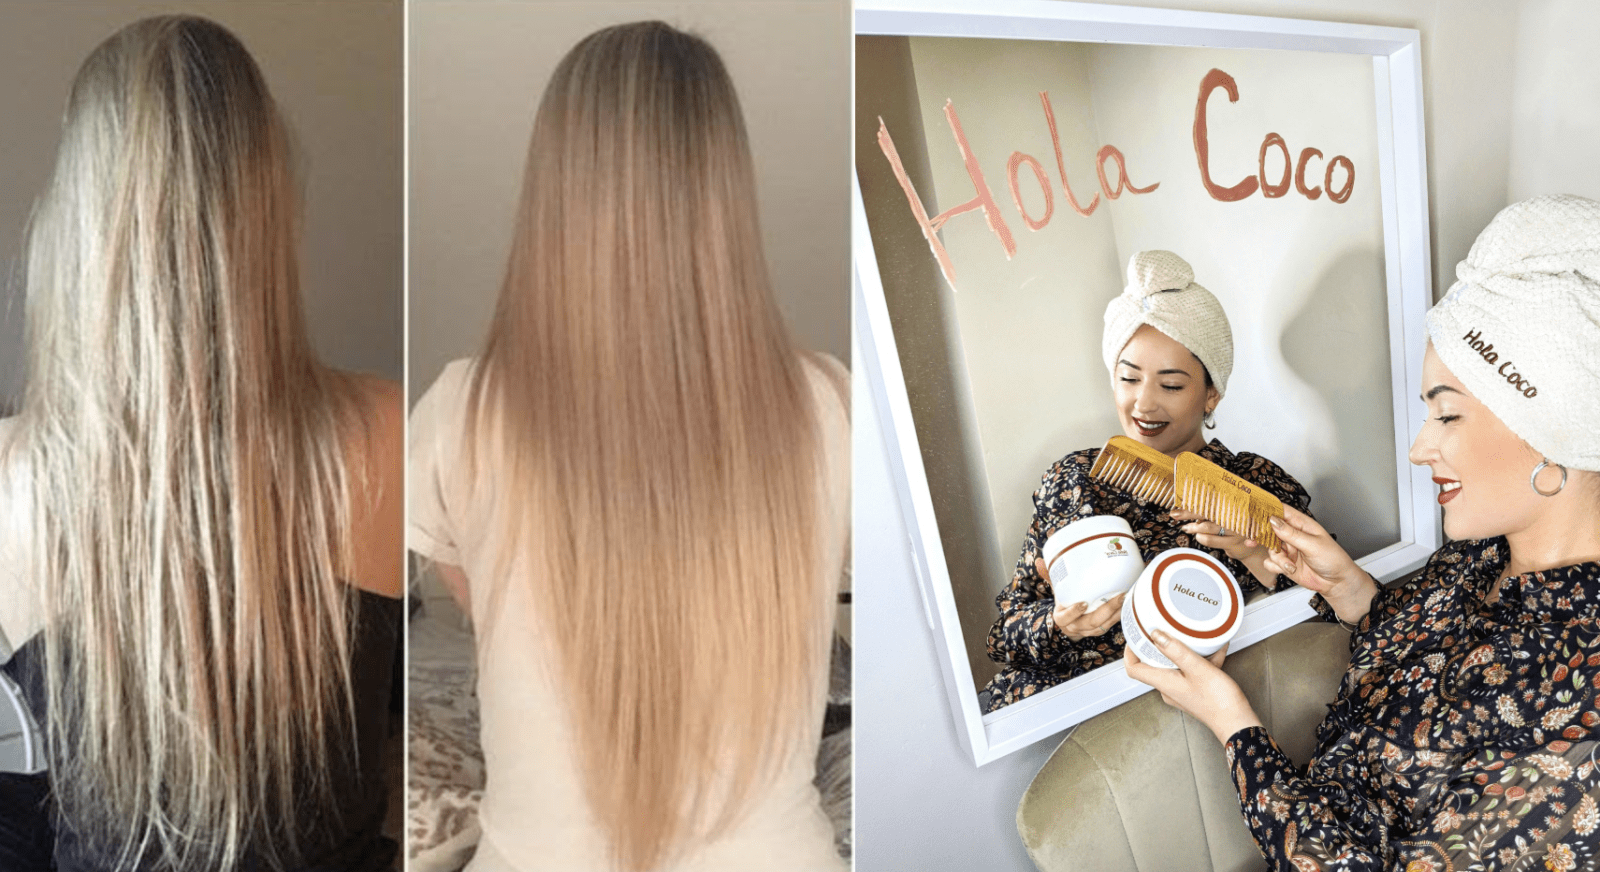 The Manchester couple who created a smash-hit coconut oil hair mask, The Manc